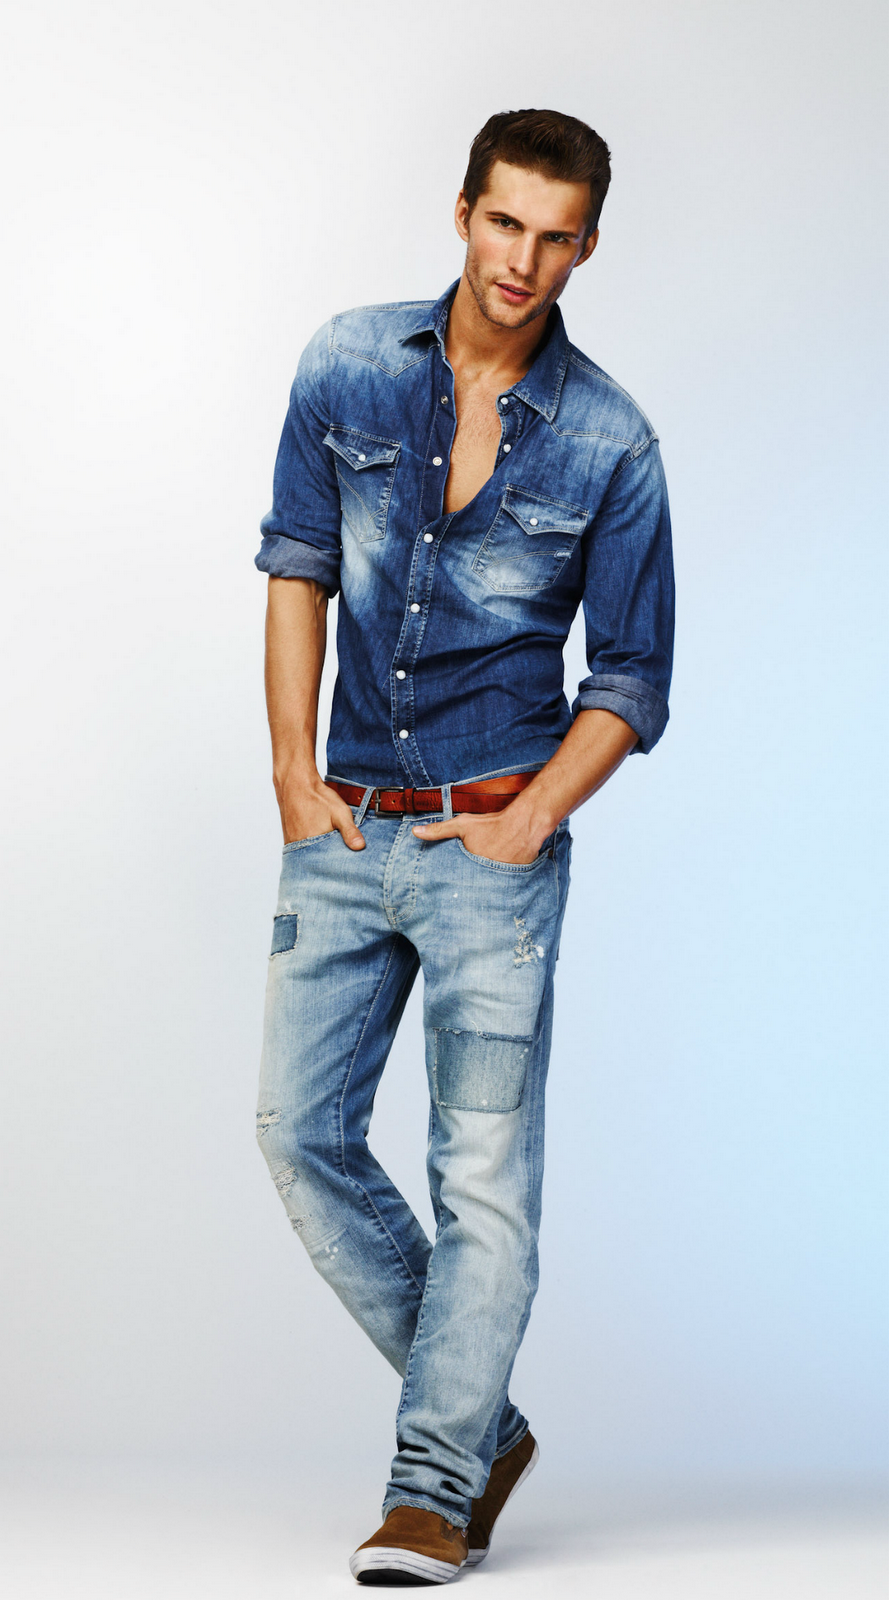 Tomas Skoloudik for Gas Jeans S/S 2012 lookbook